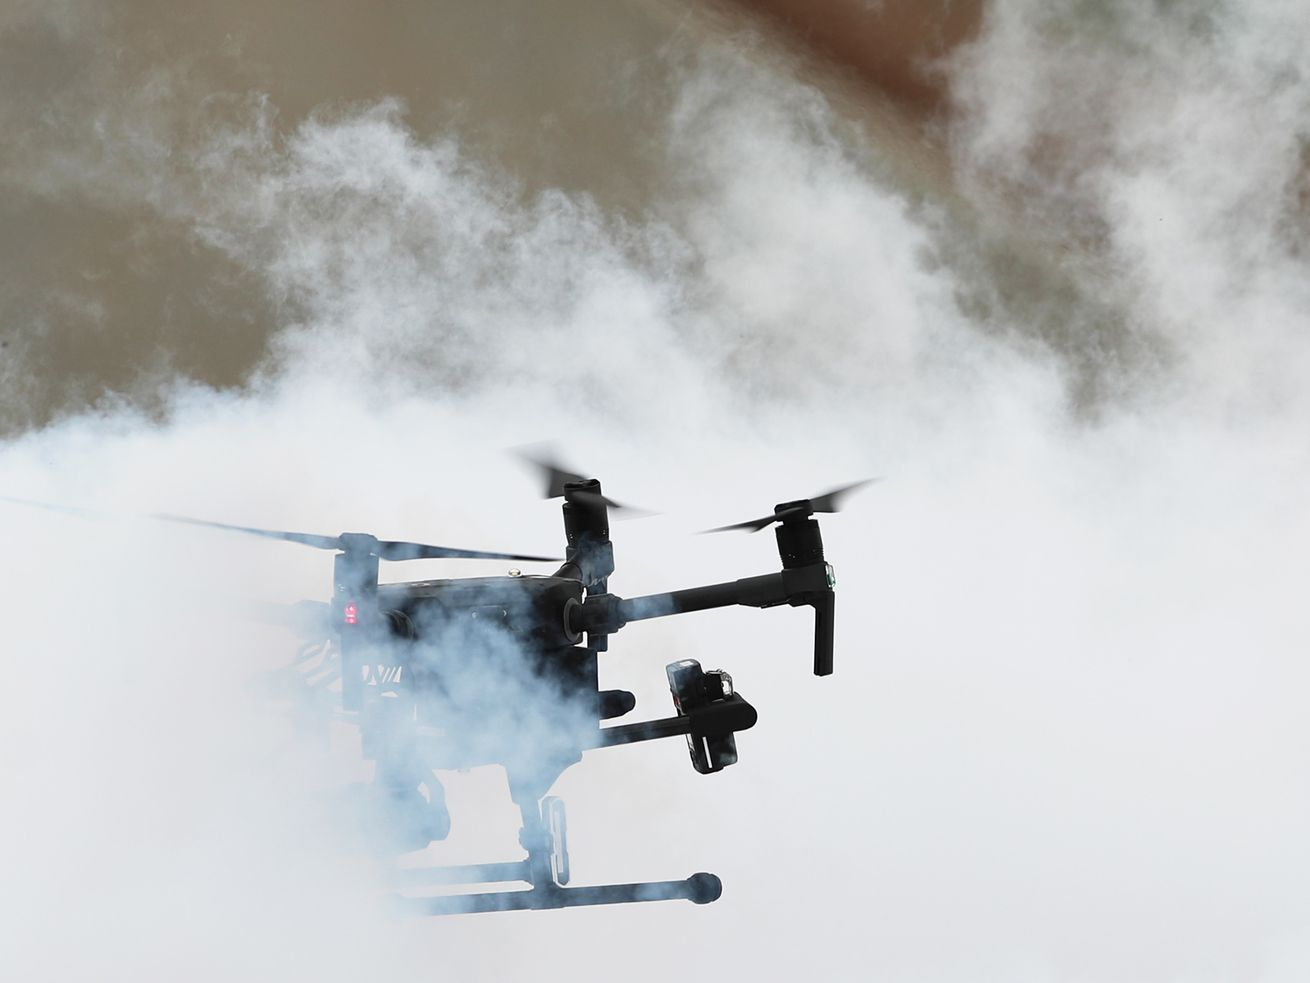 Invasion of the drones: No longer a 'Jetsons'-esque fantasy, Utah is on the leading edge